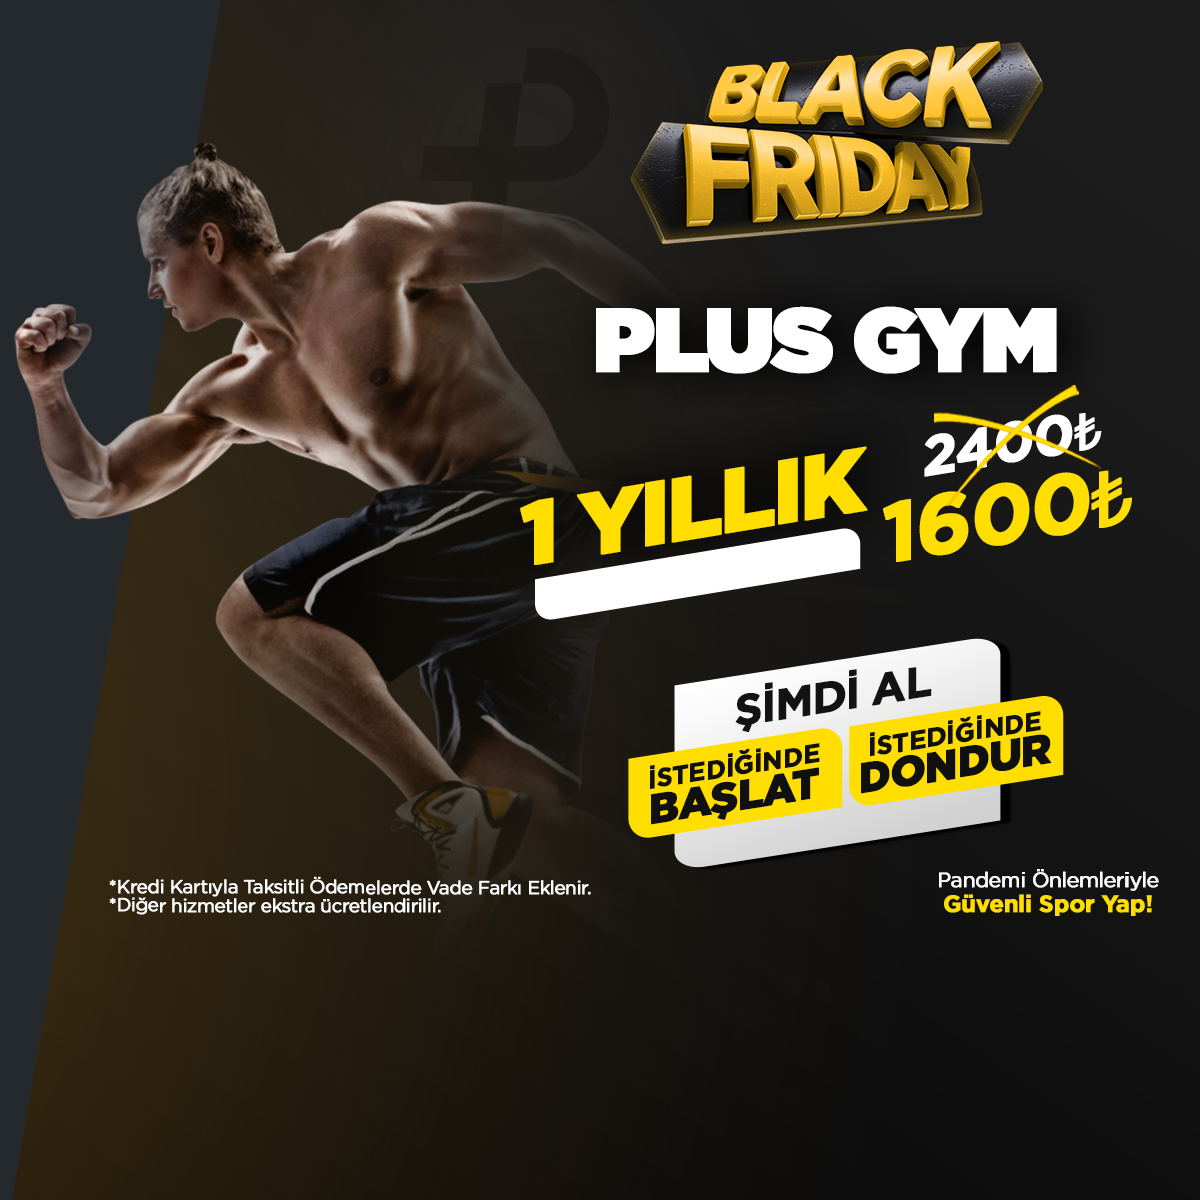 Black Friday Plus GYM